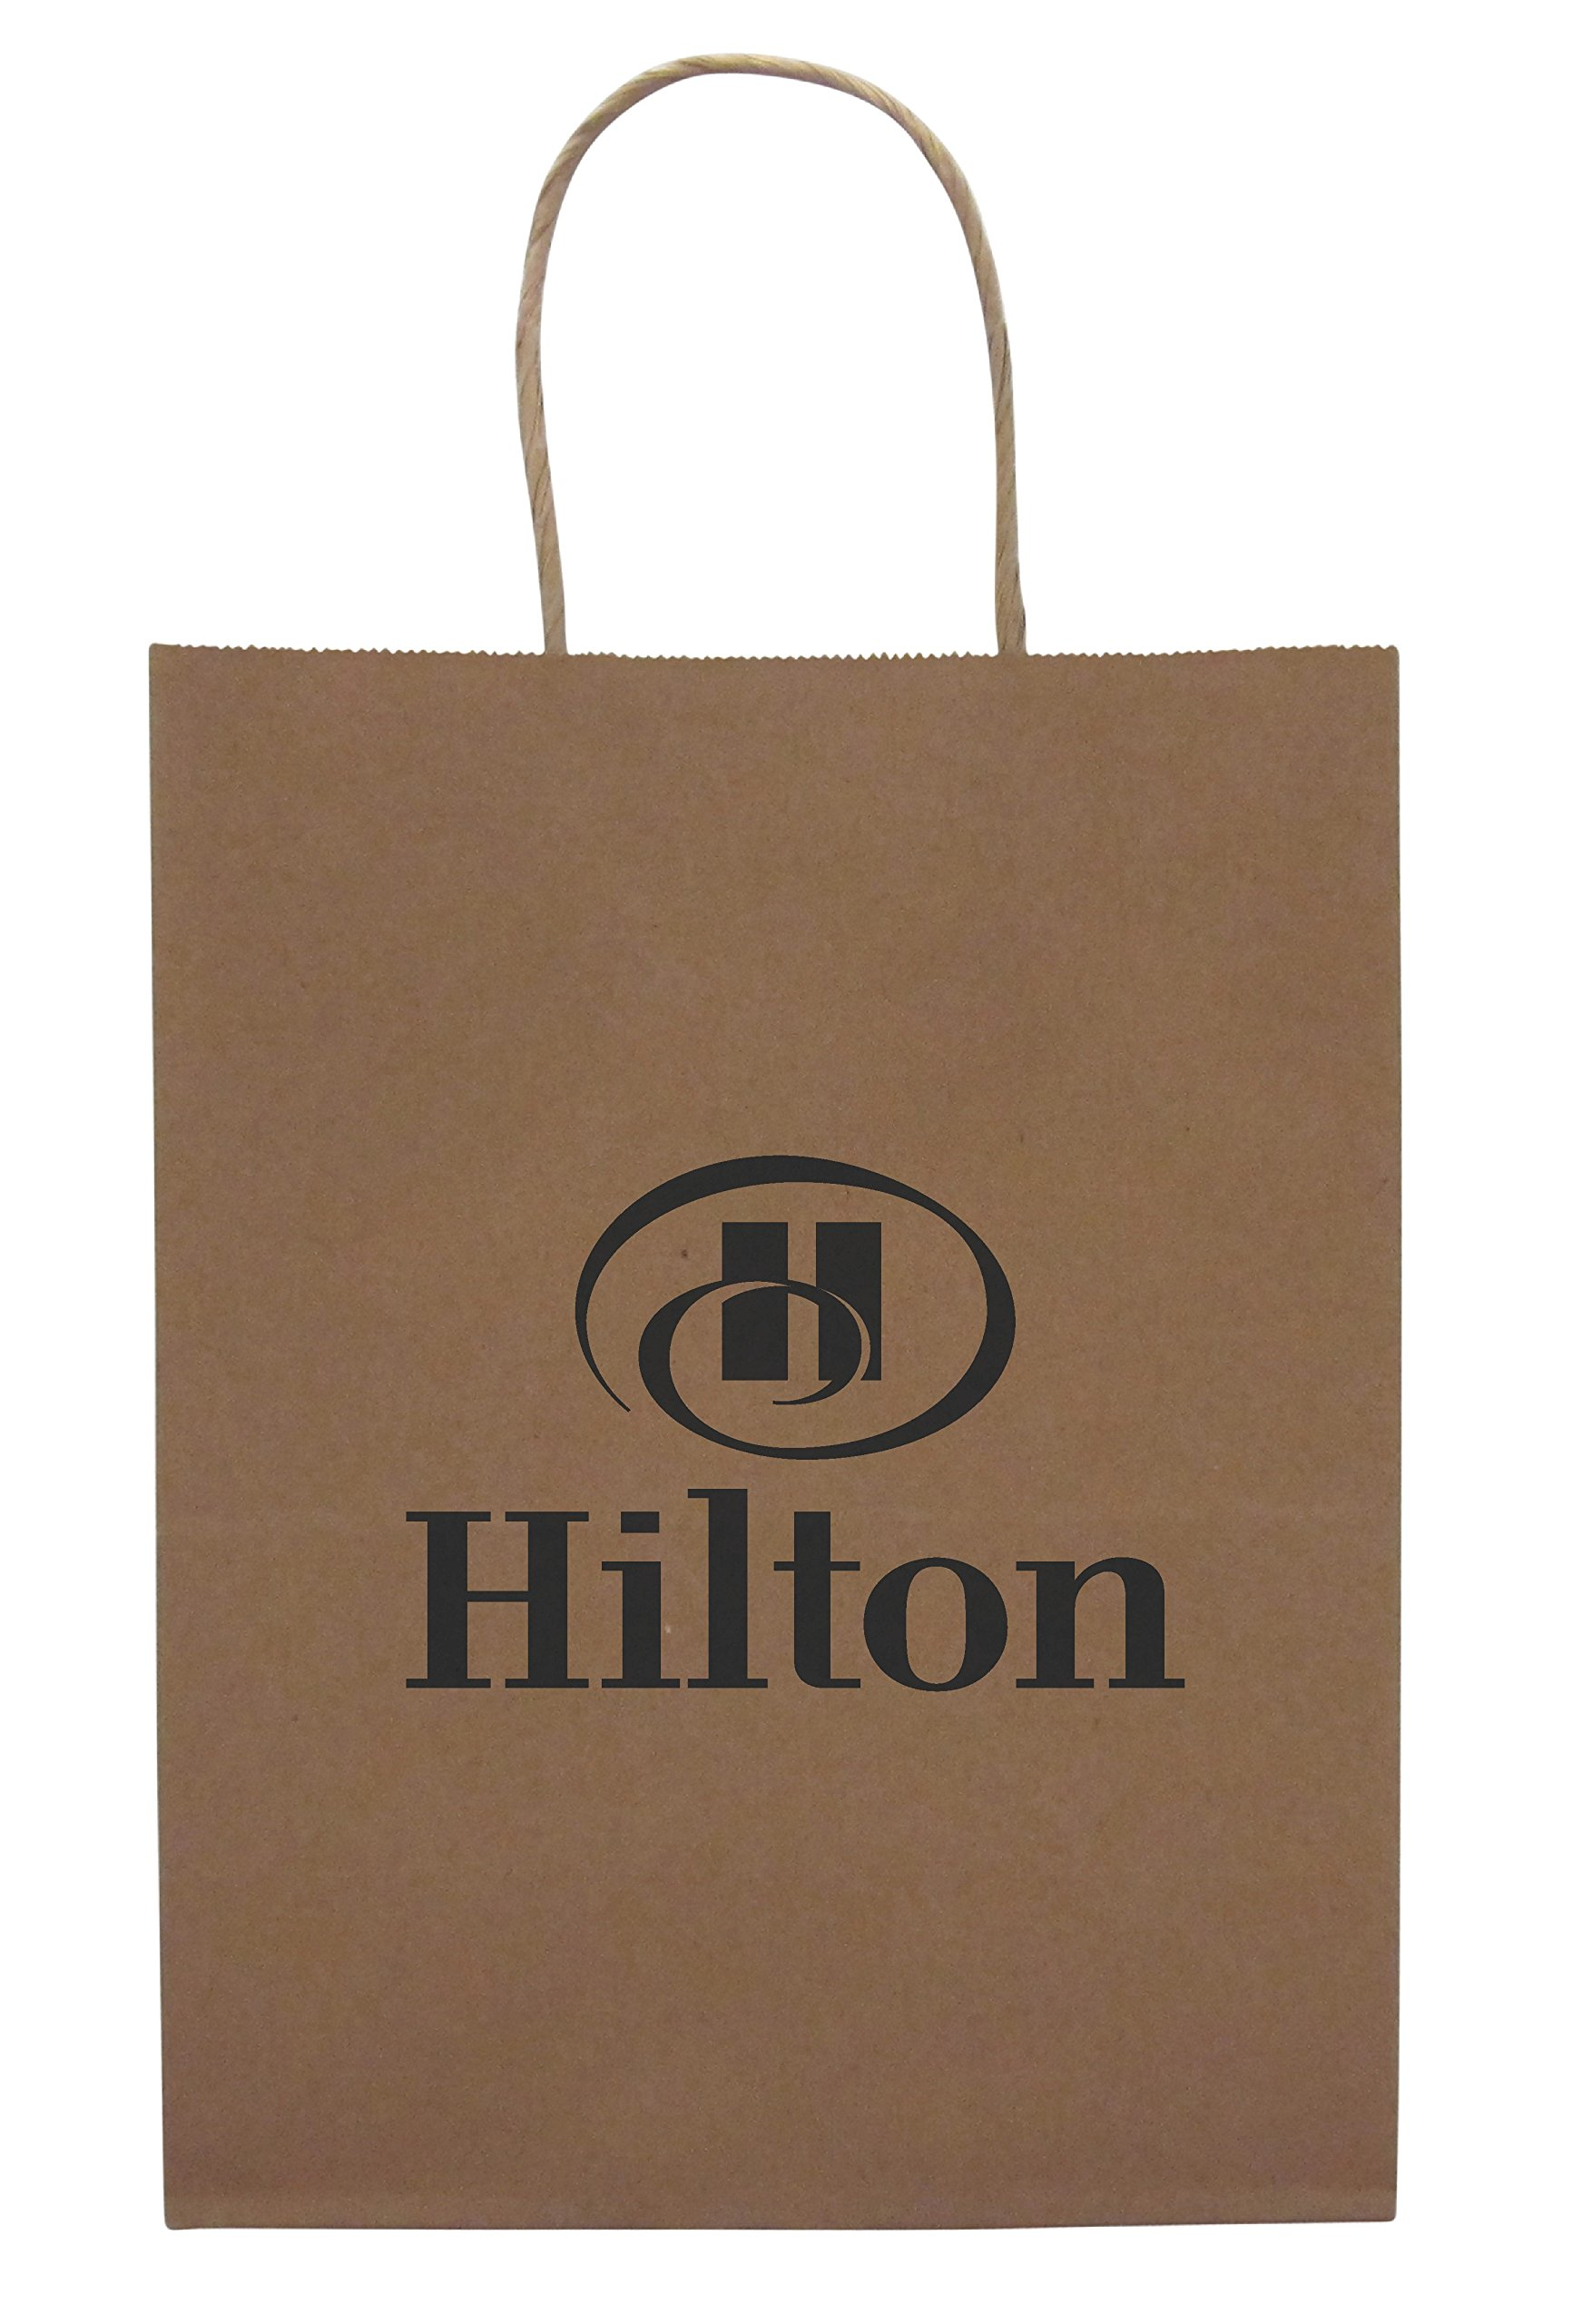 Incredible Packaging - 8'' x 5'' x 10'' Brown CUSTOM Kraft Paper Bags with Handles for Shopping, Retail and Merchandise. Strong and Reusable. (White, 4000) by Incredible Packaging (Image #3)